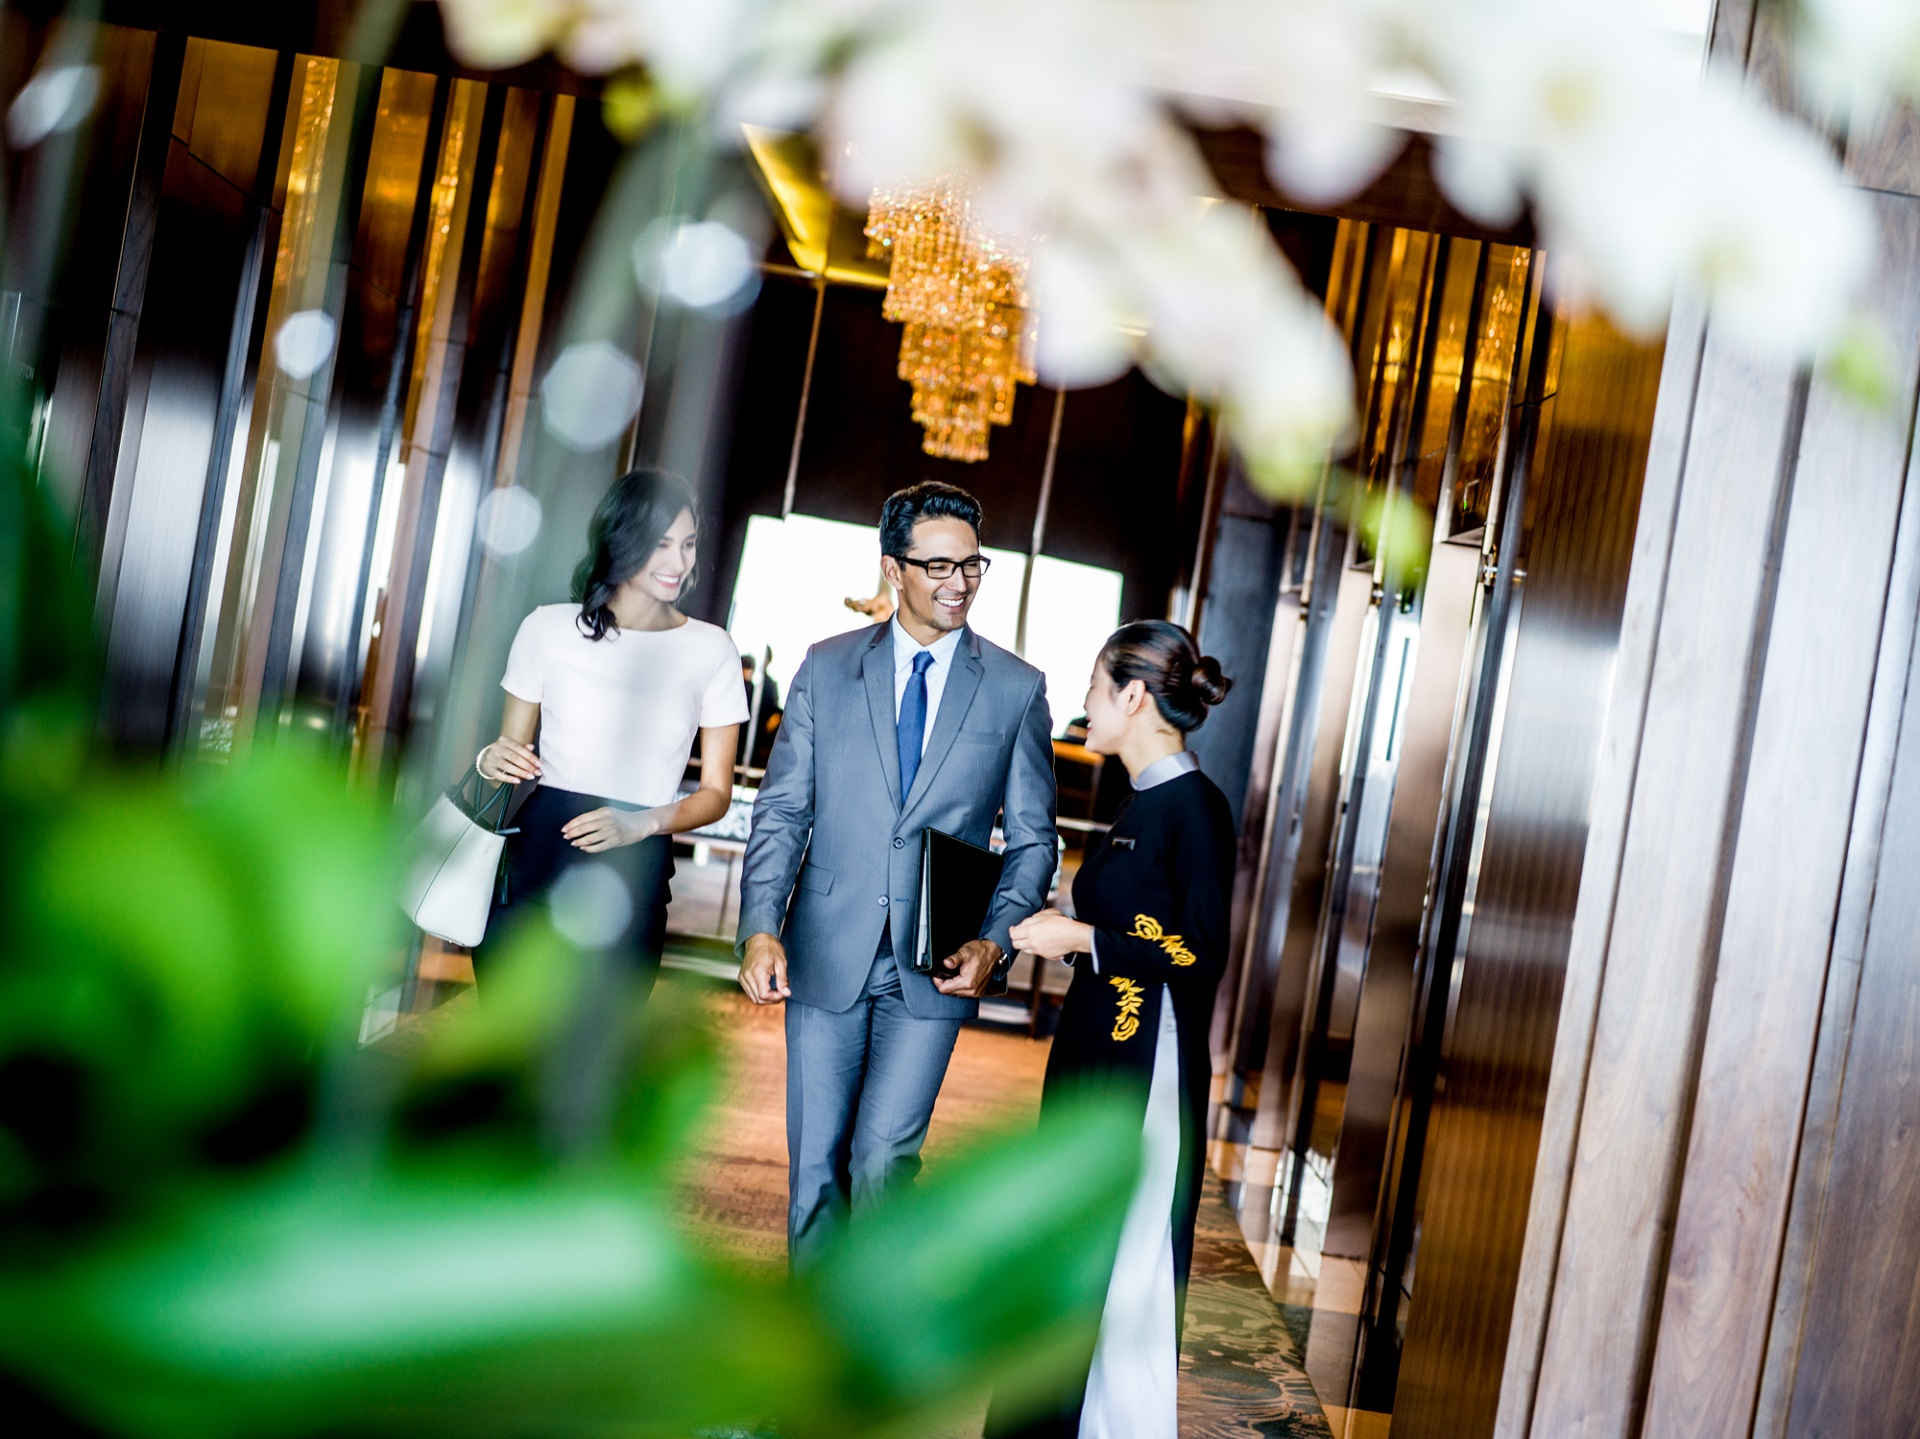 a staff is showing guests around the hotel in Hanoi